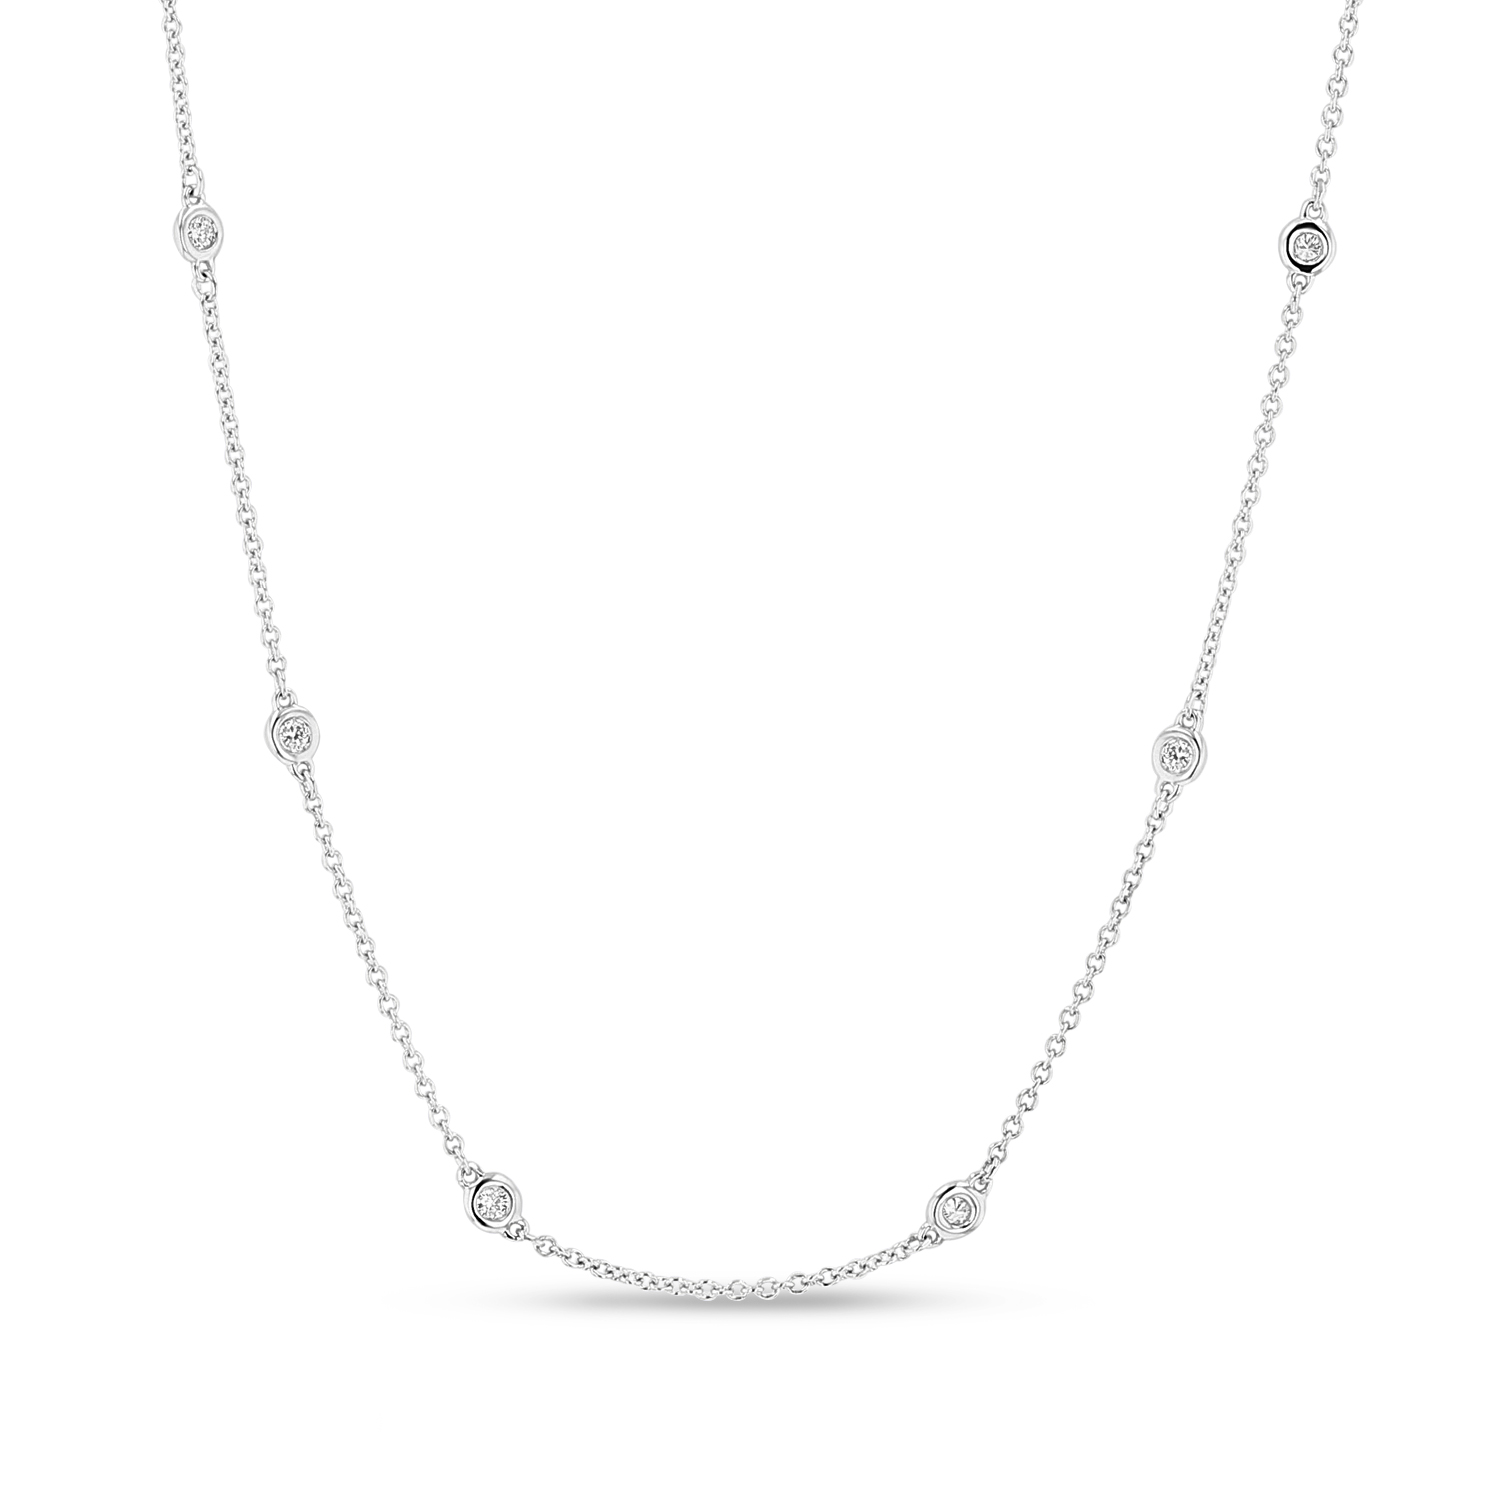 View 0.29ctw 20 inch Diamond By the Yard Necklace in 14k White Gold